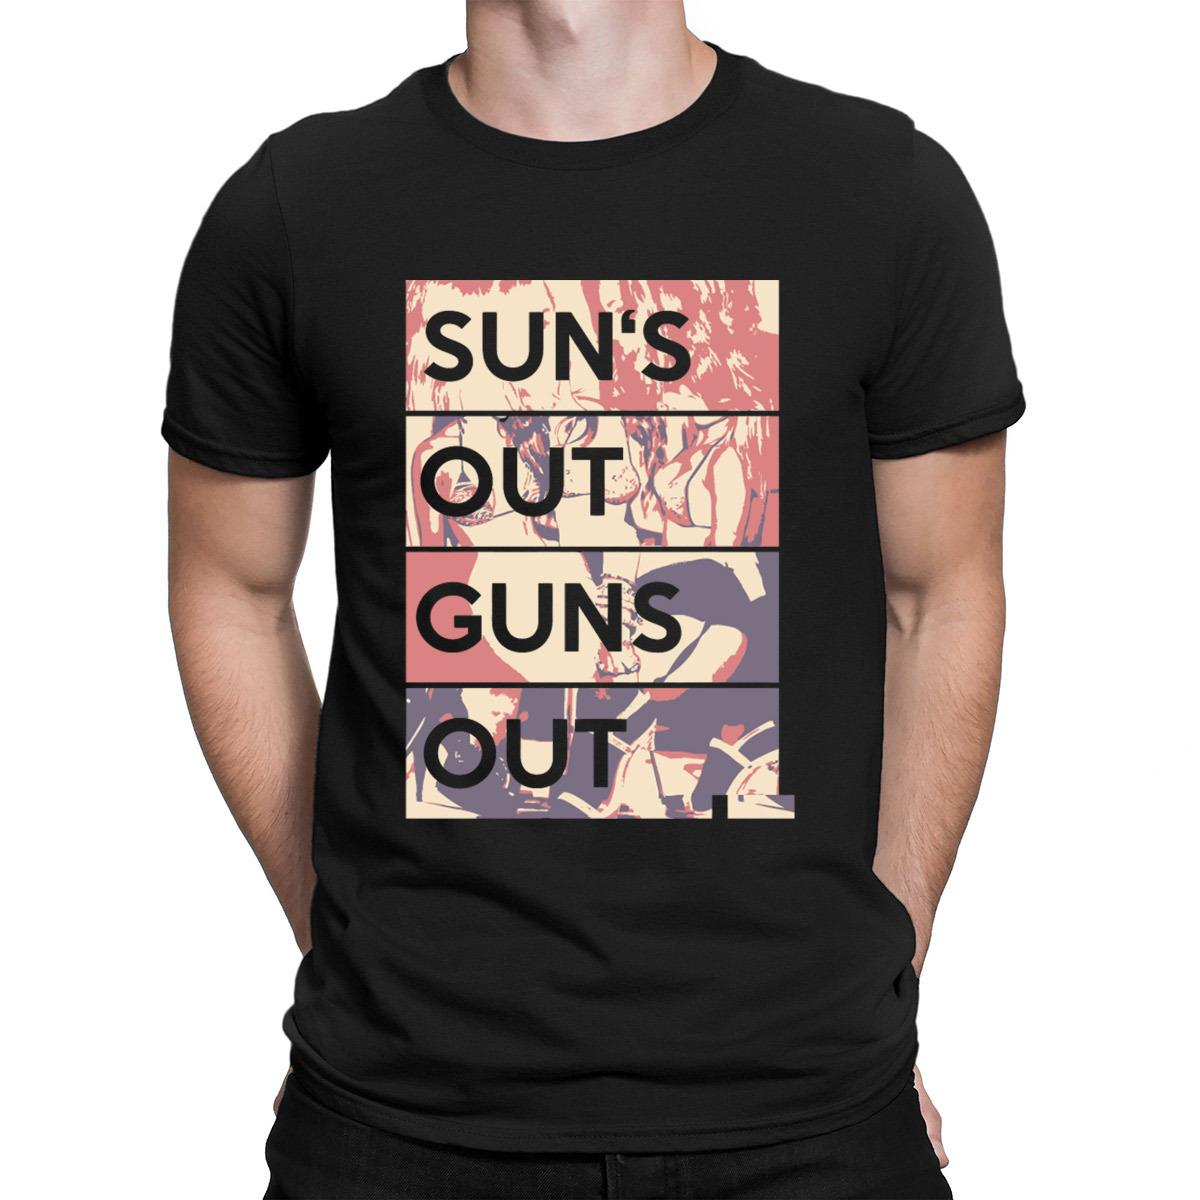 Gun Sun Out Guns Out T-Shirts Costume Branded Personaliza 2018 T Shirt For Men New Fashion Hot Sale Manga corta Anlarach Novedad